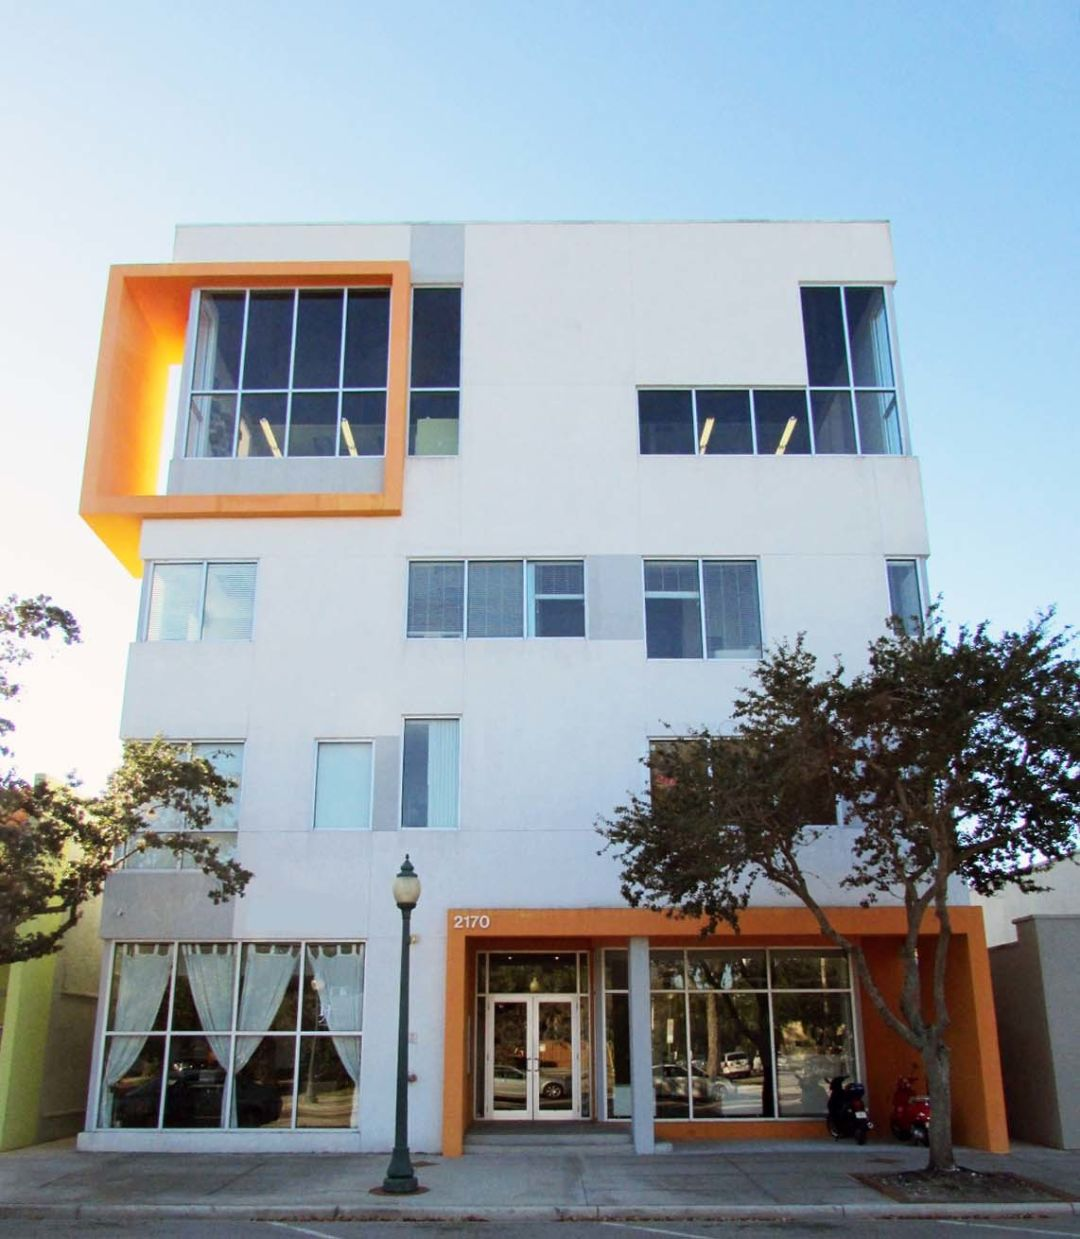 The Finergy Building at 2170 Main St. in downtown Sarasota.